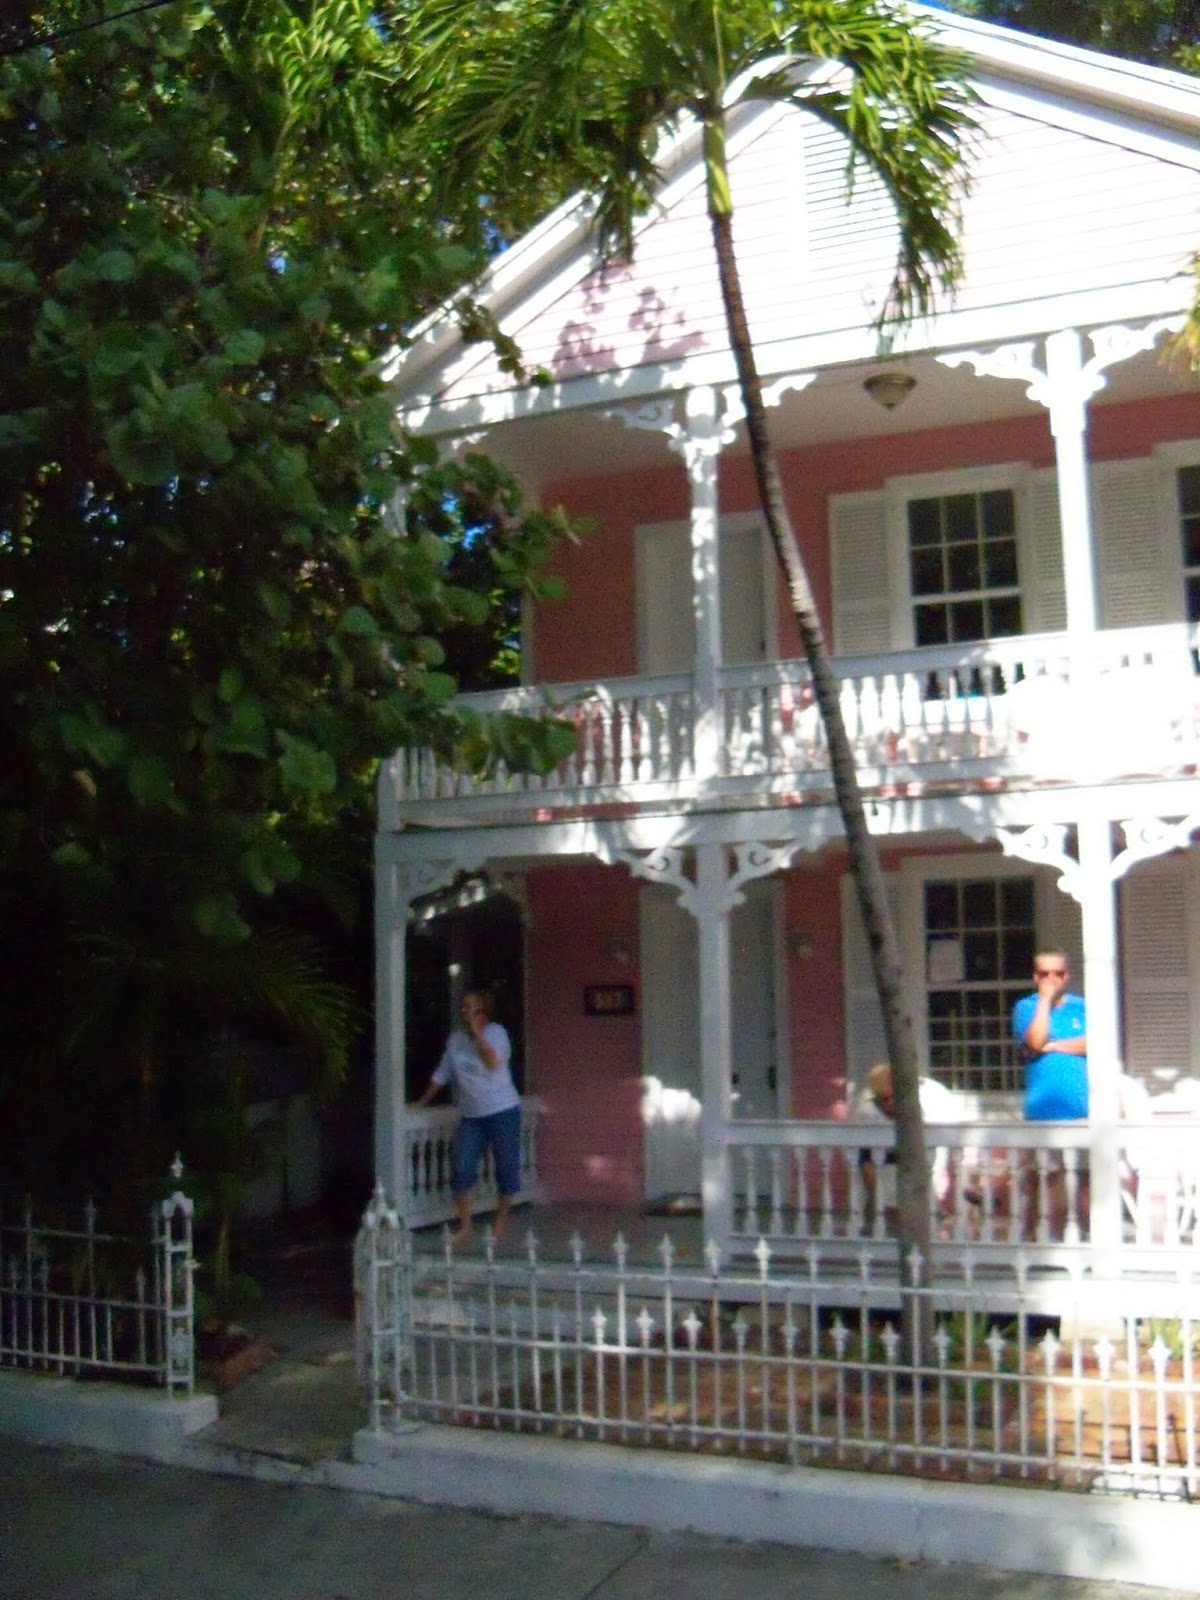 Key West Vacation - 116_5665.JPG